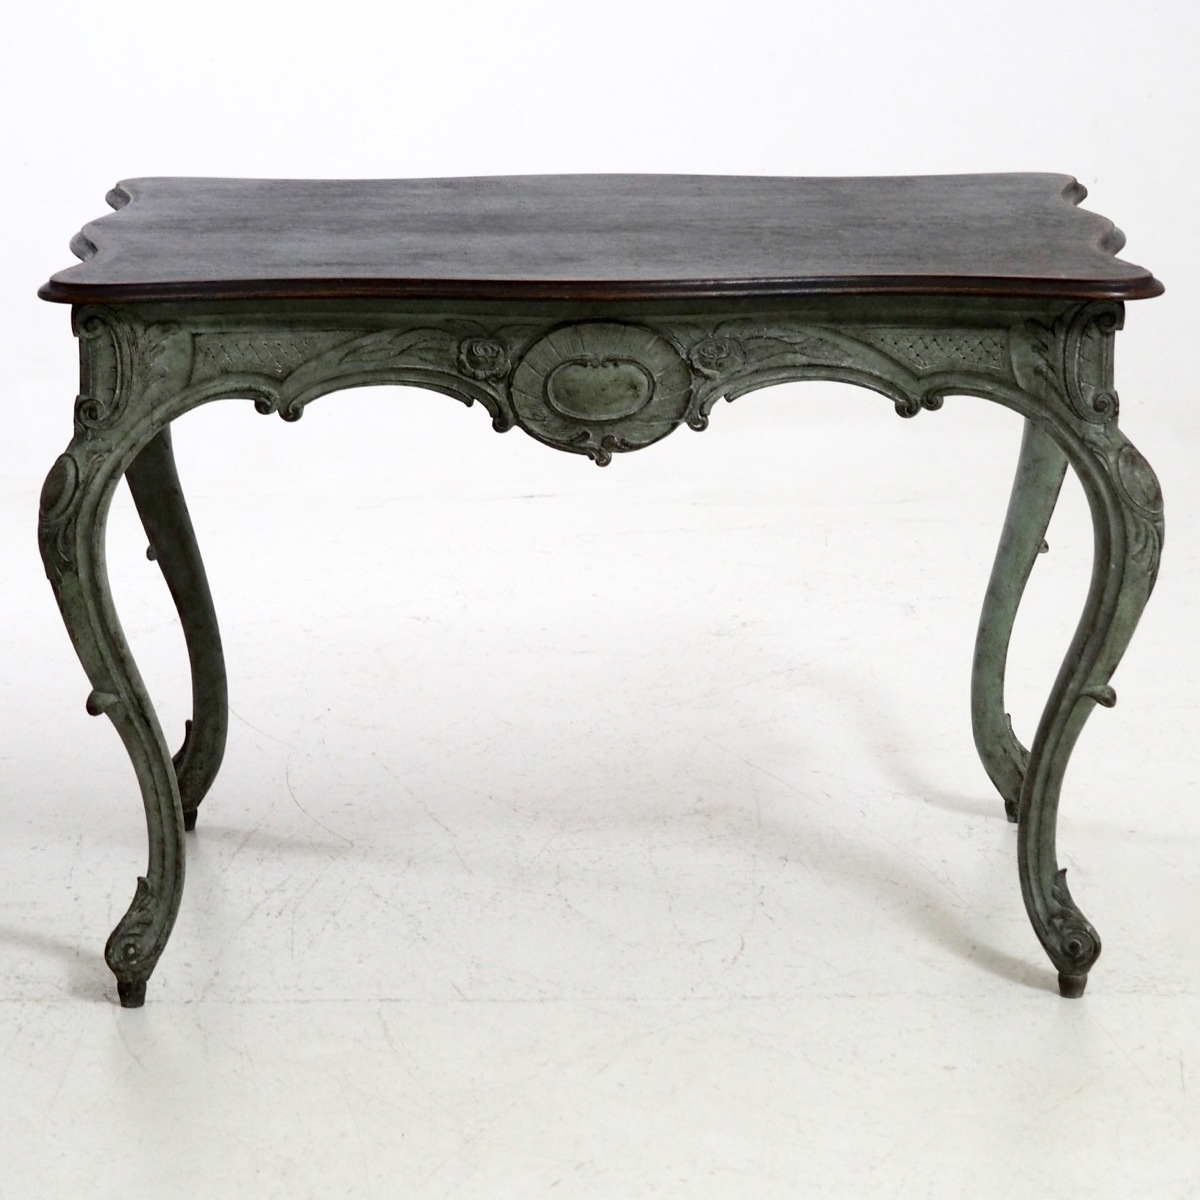 Swedish table, circa 1830. - € 1.600